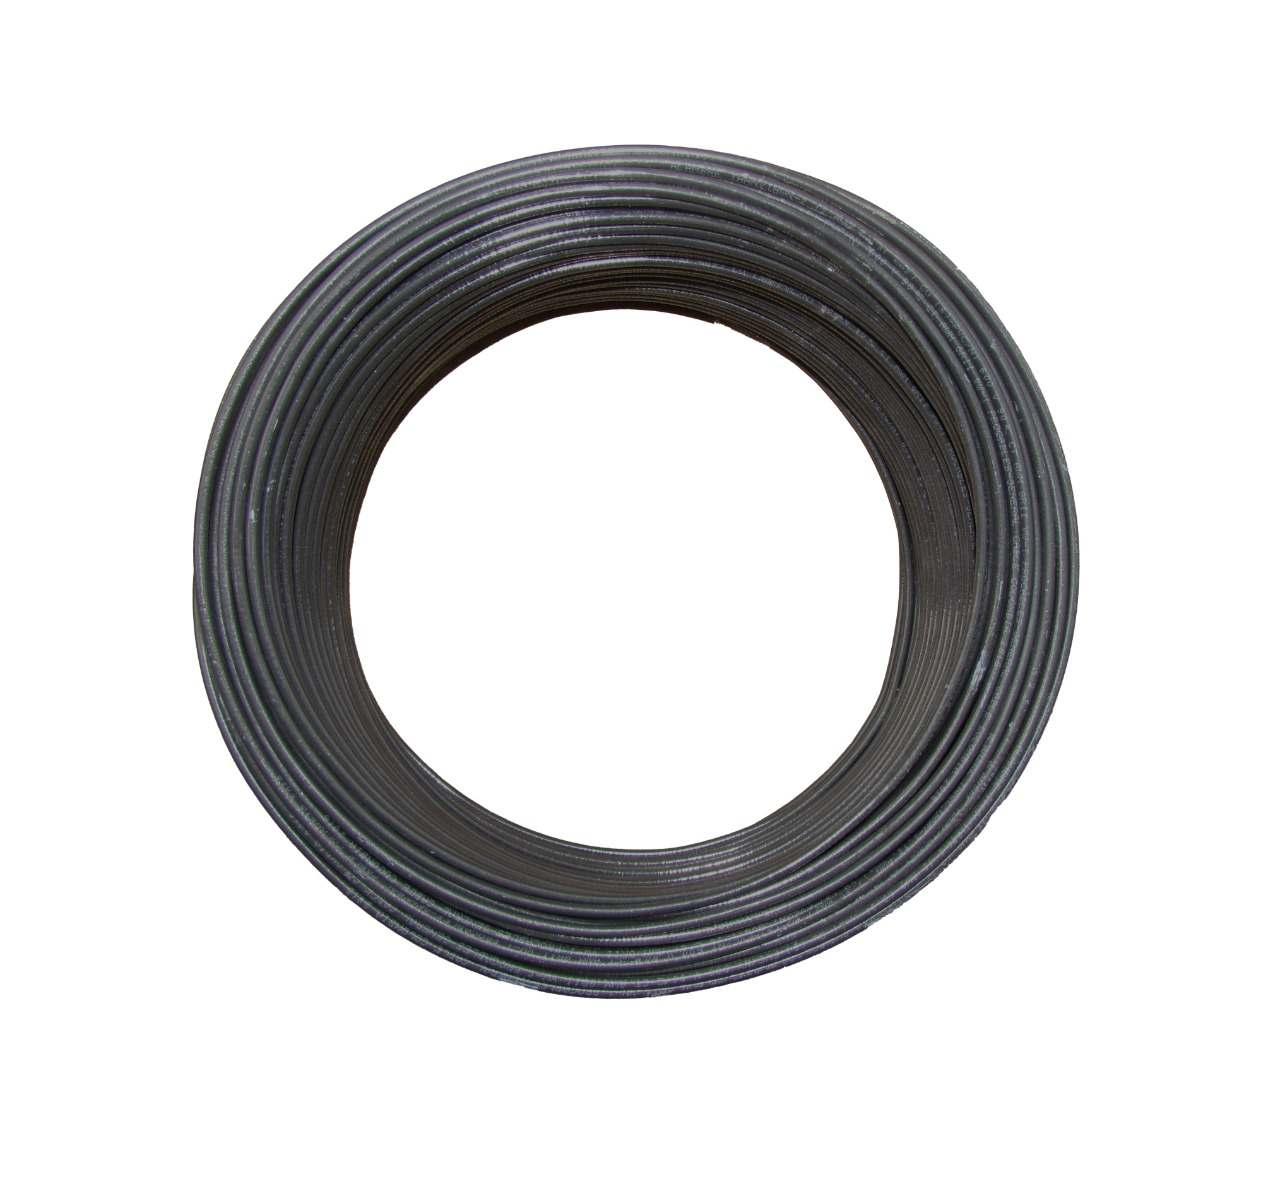 Cable 14 AWG LSHF 75°C